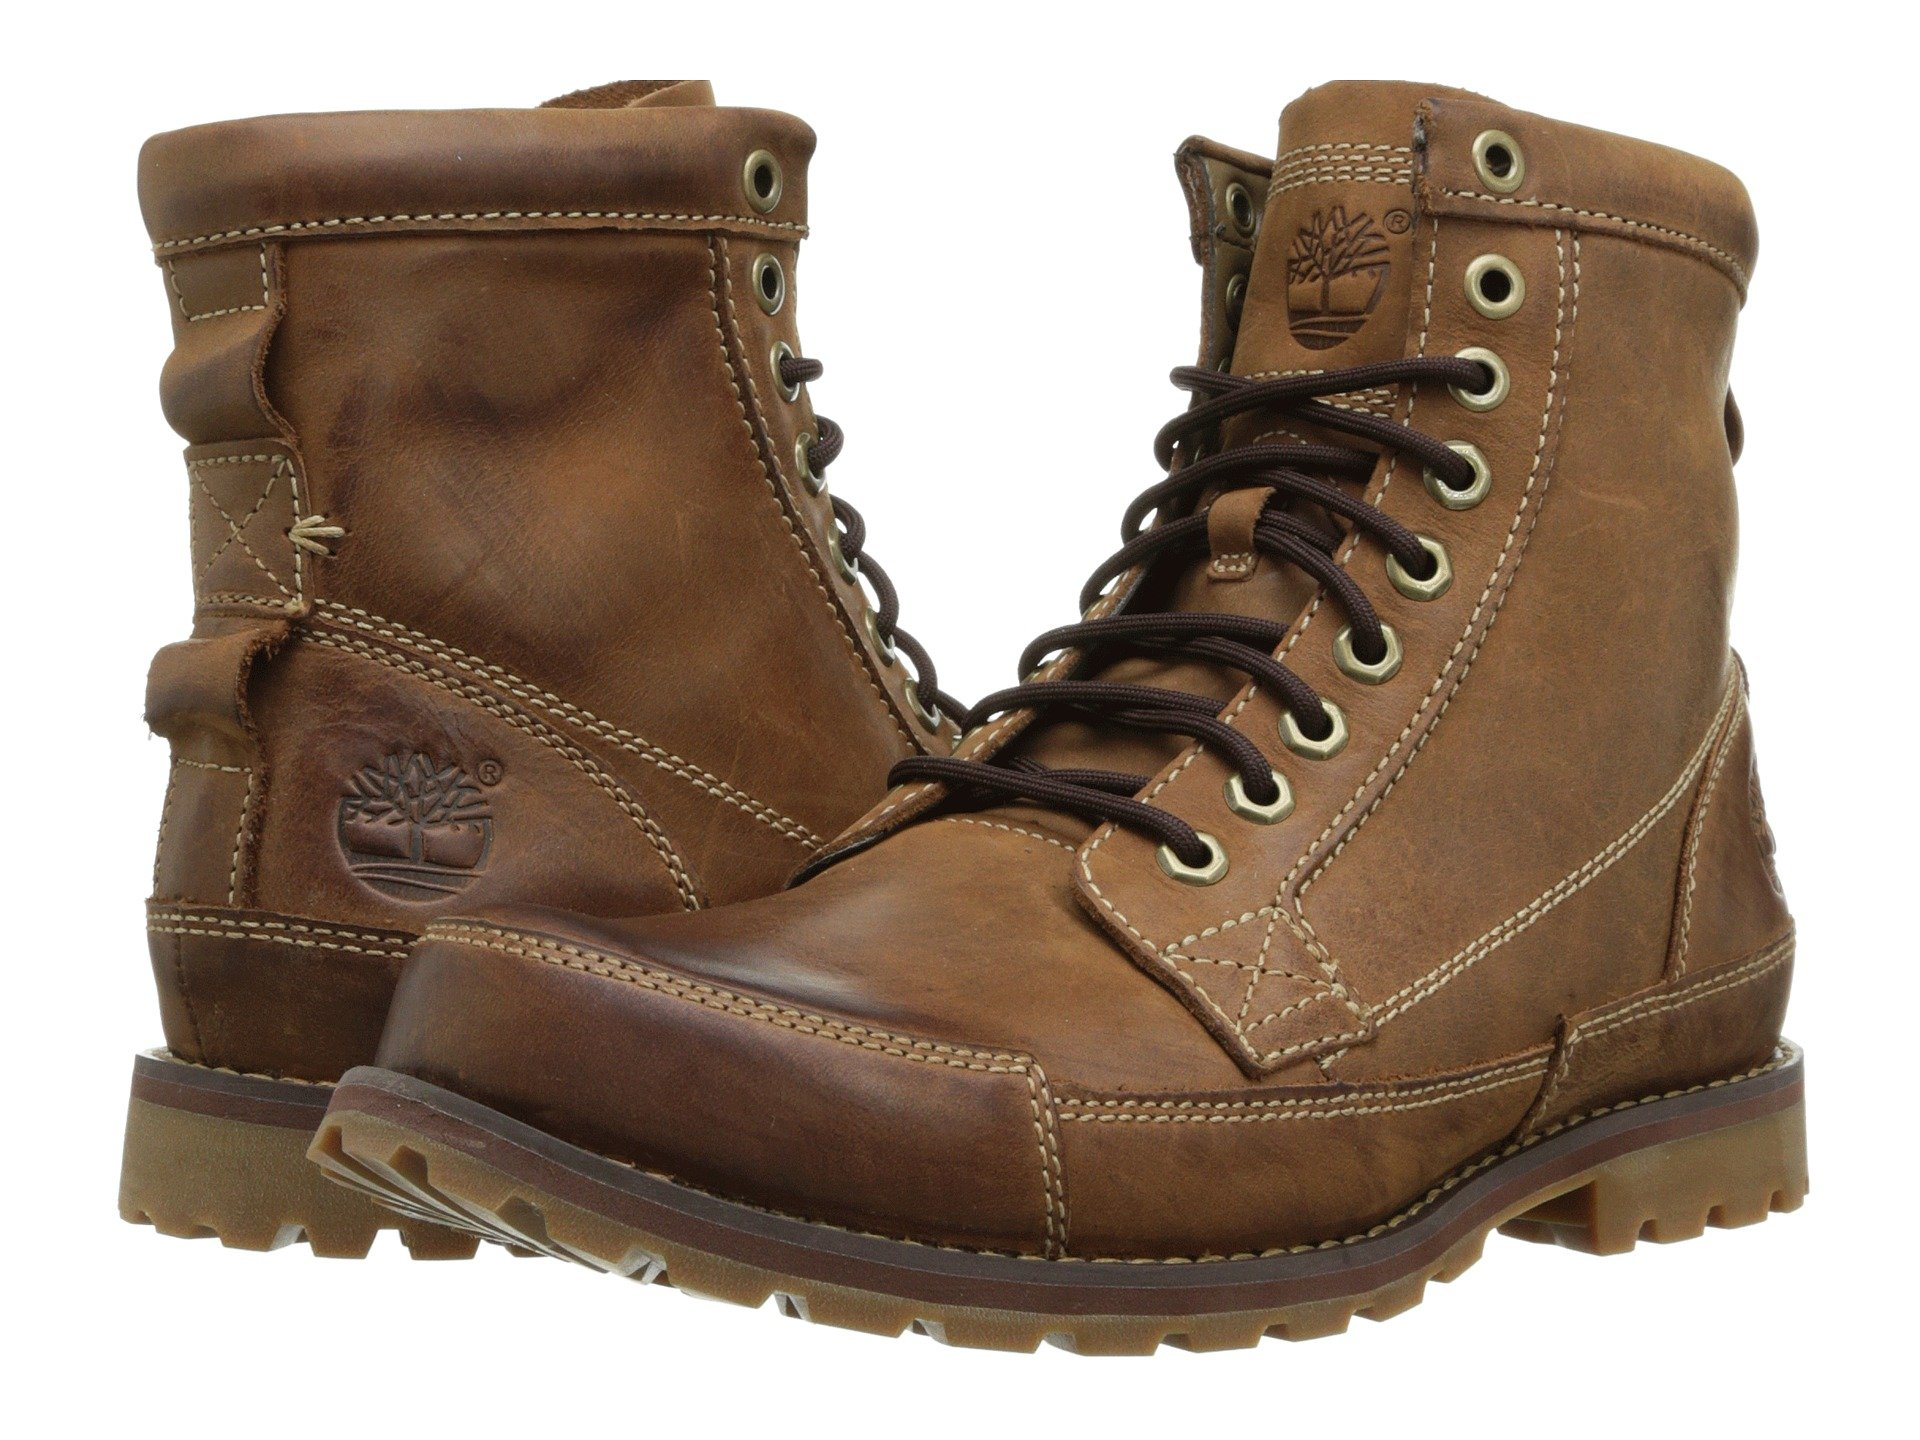 Timberland Men's Earthkeepers 6'' Lace-Up Boot (14 D(M) US, Medium Brown/Full Grain)